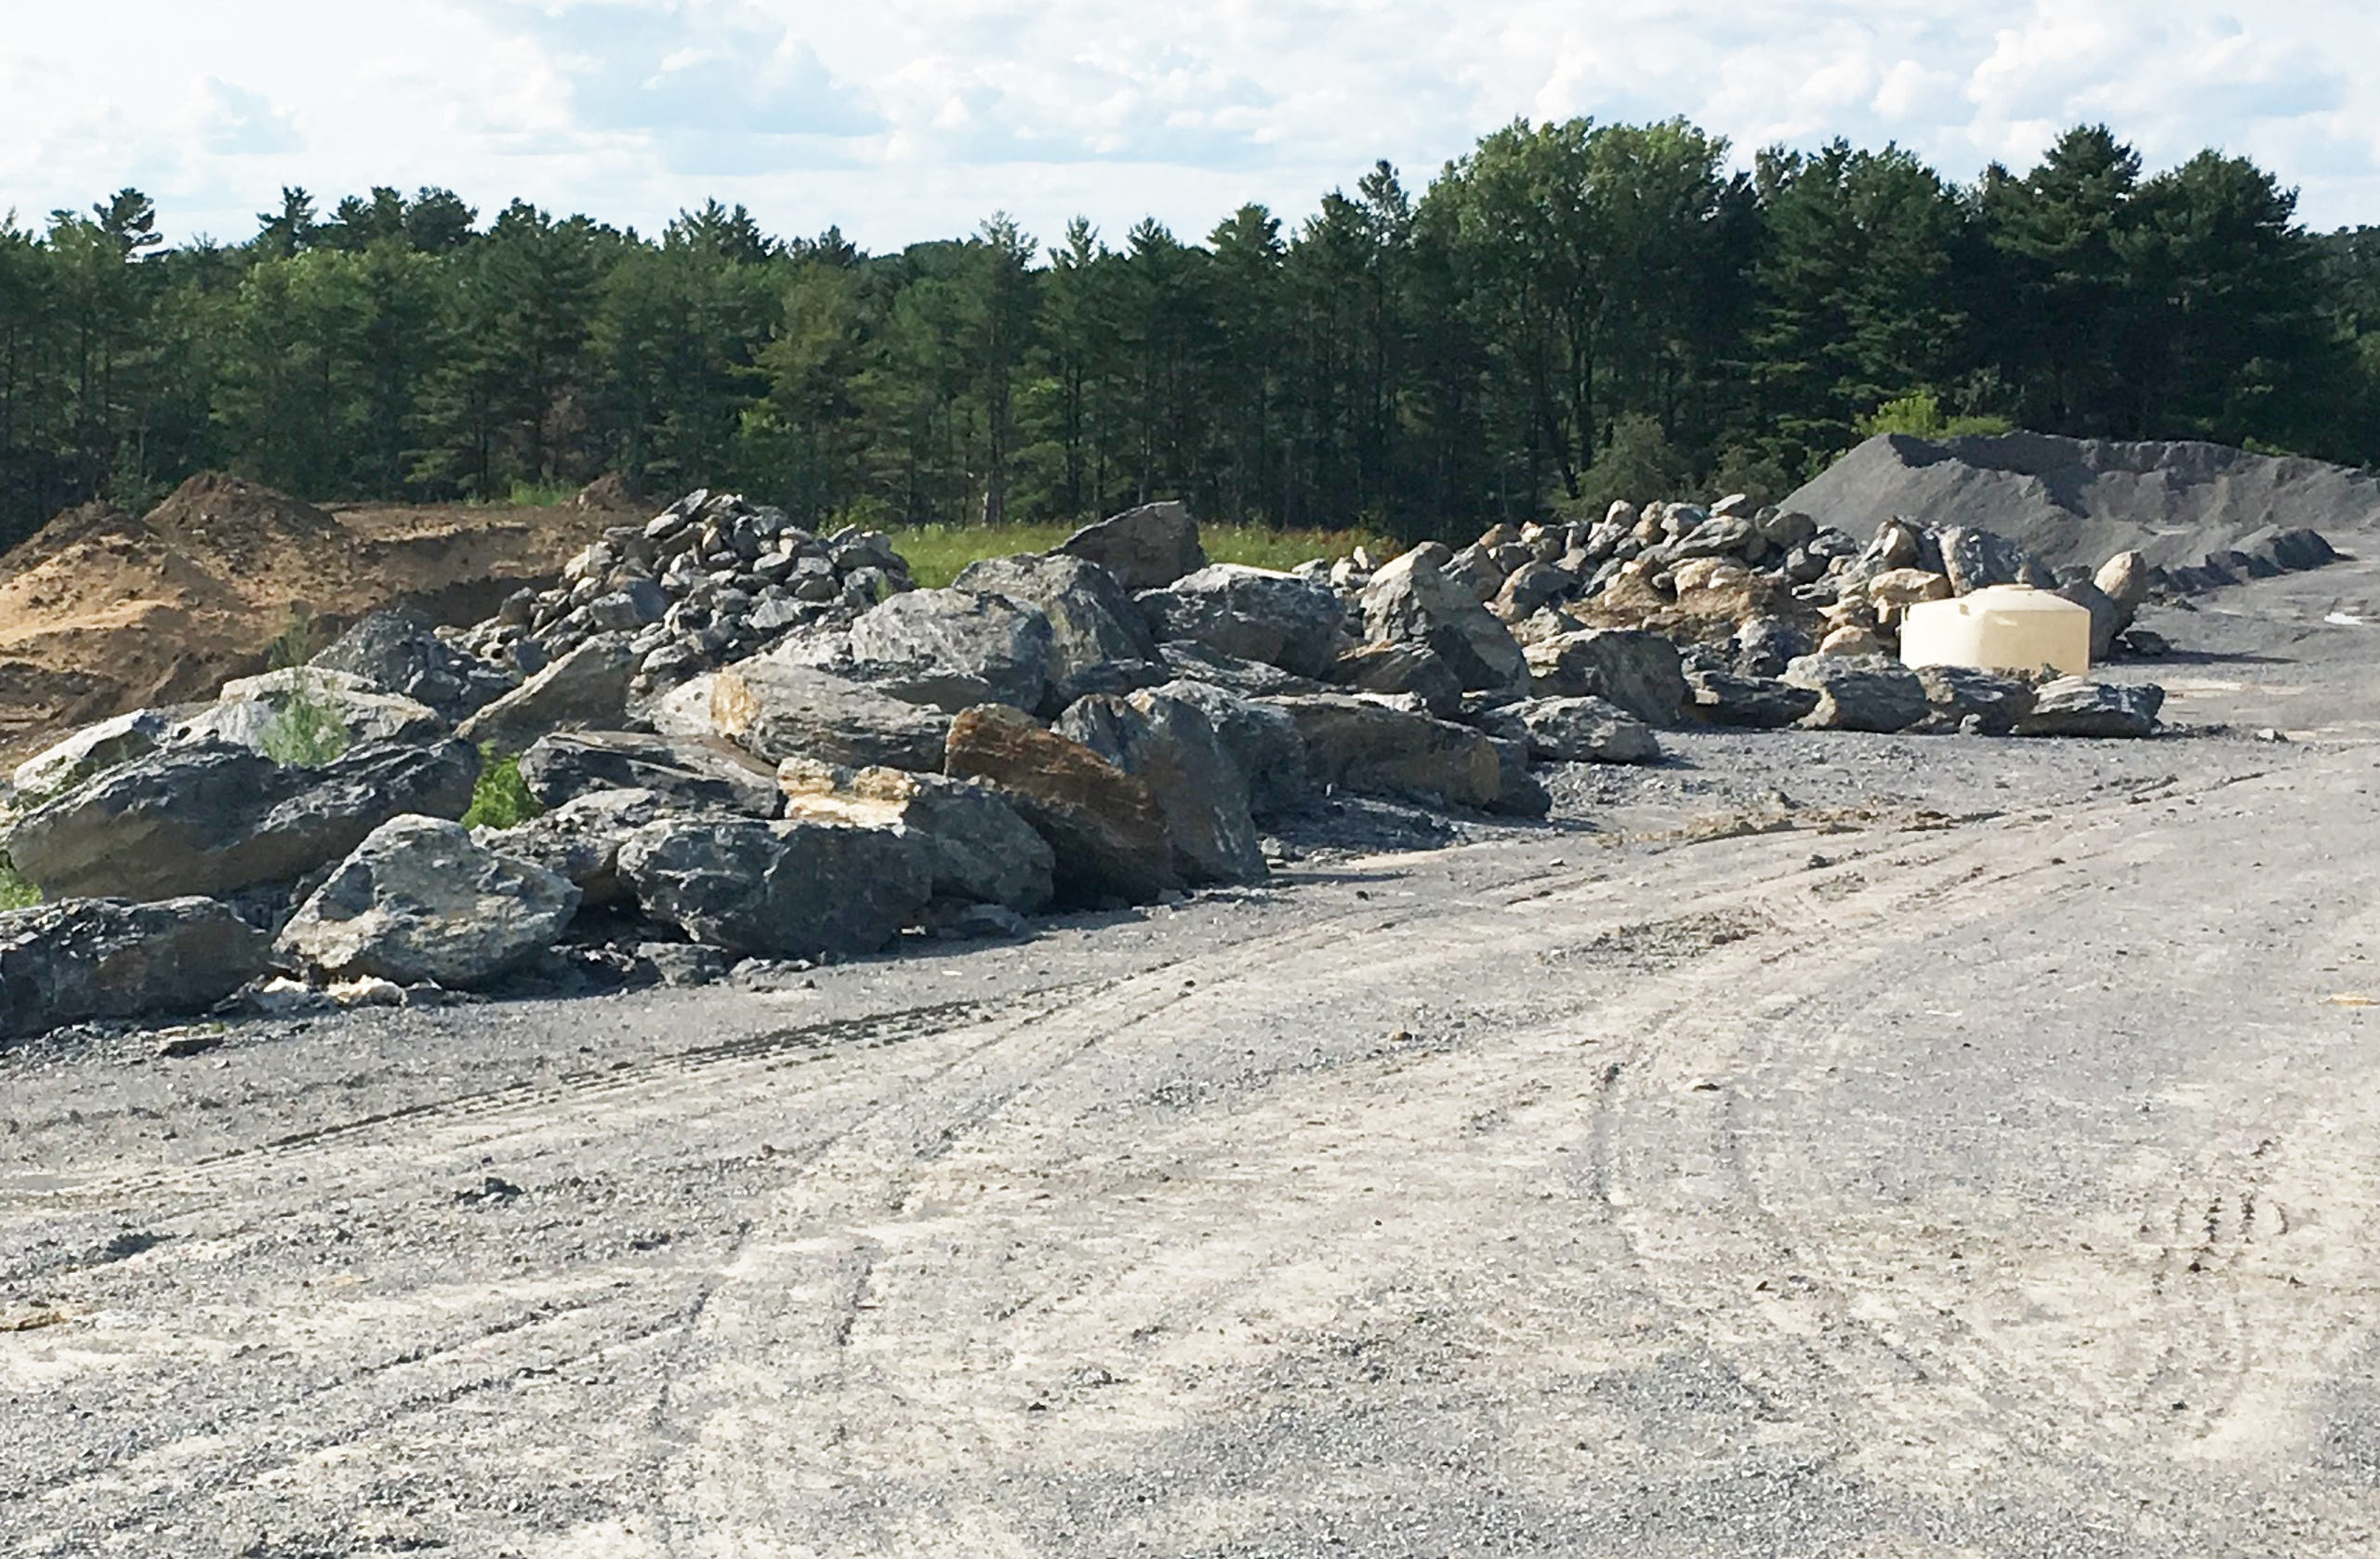 Boulders, gravel and topsoil are stockpiled at the edge of a housing development under construction at the O'Brien Farm in South Burlington on July 14, 2019.